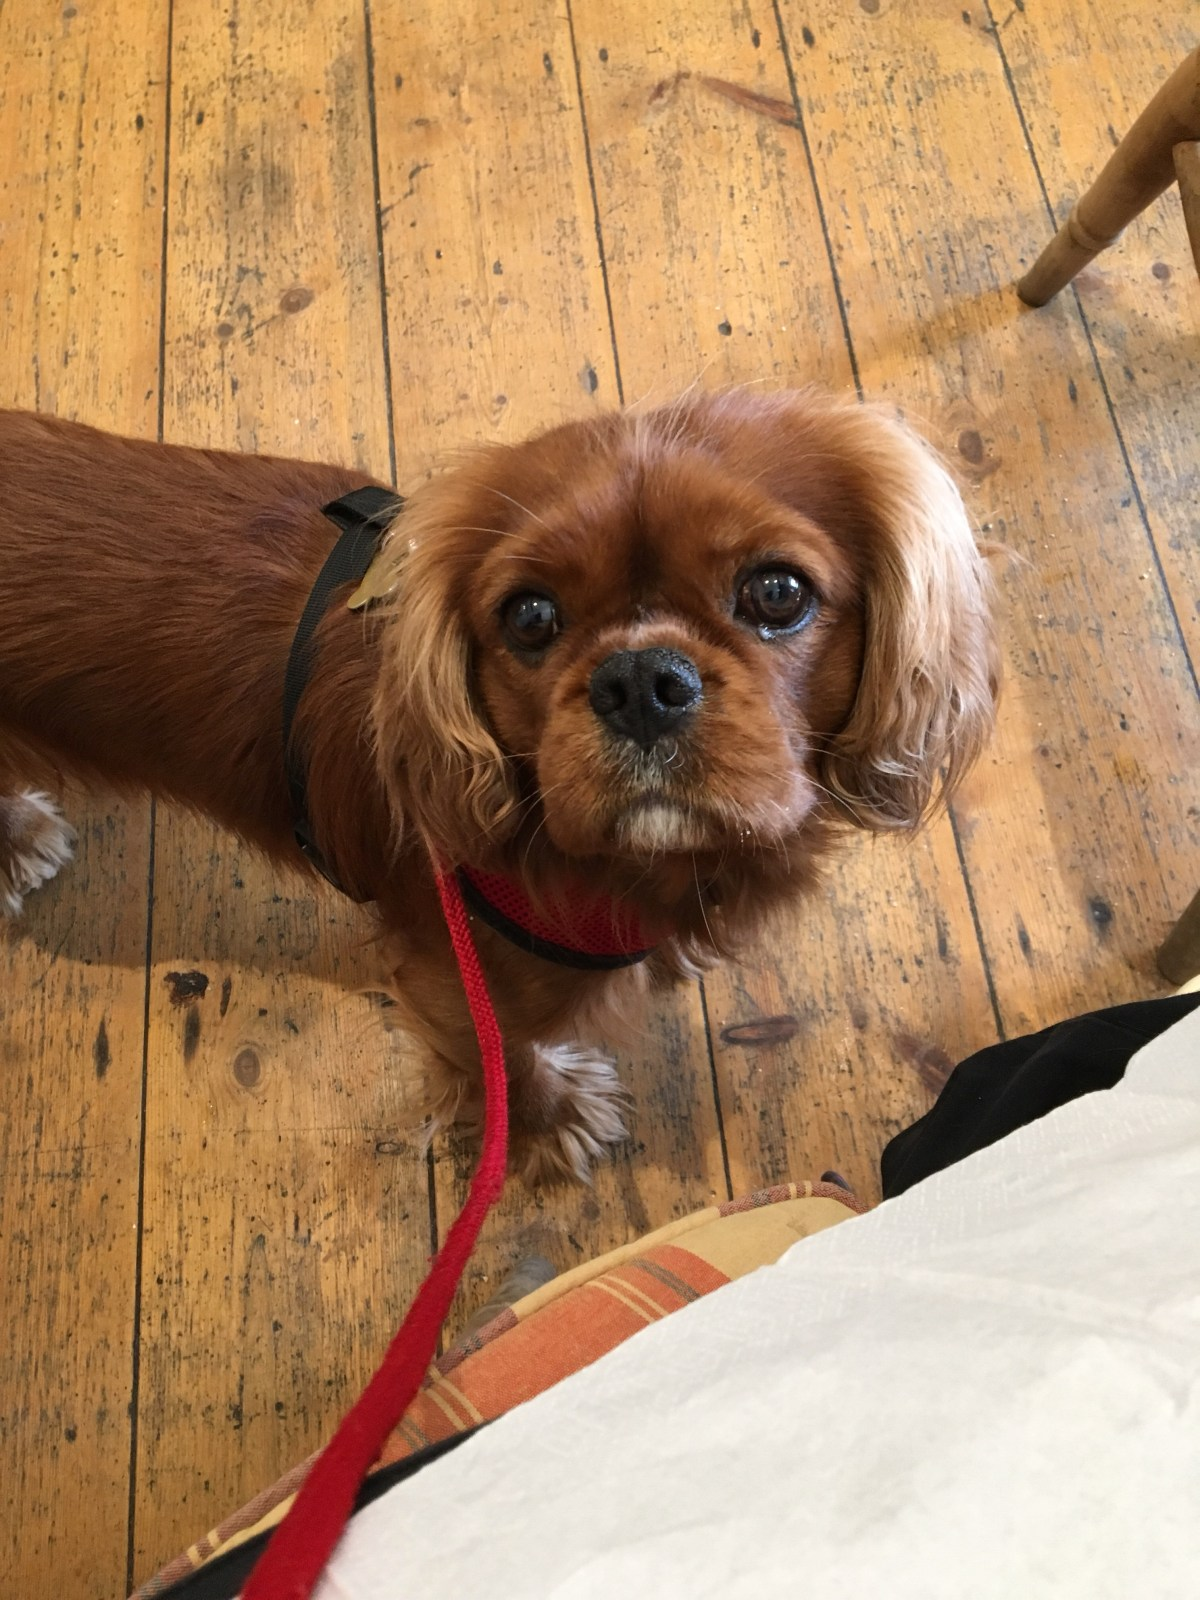 Dog friendly places to go in Lincoln